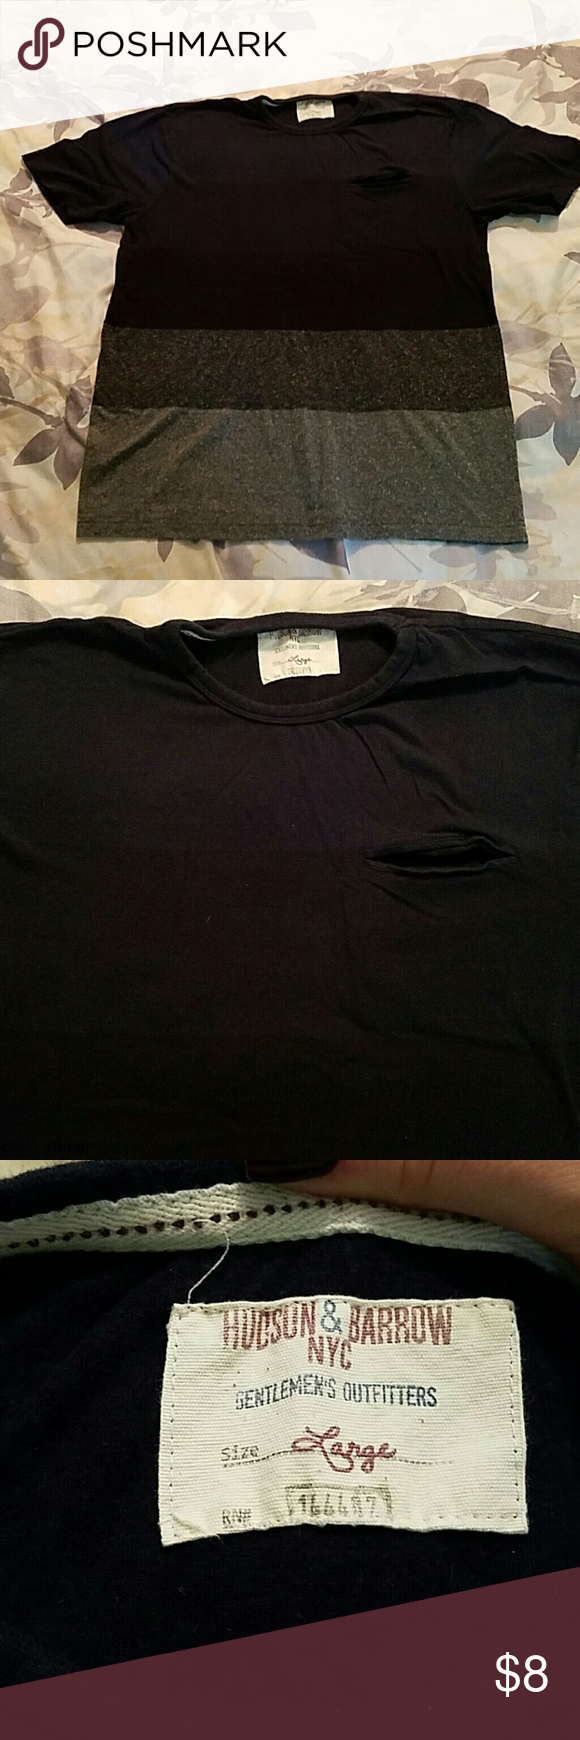 Men's color block t-shirt Black and gray colorblock tee with a small chest pocket. Says large but fits more like a medium or I guess it would be a tight fitting large. Hudson & Barrow NYC Shirts Tees - Short Sleeve